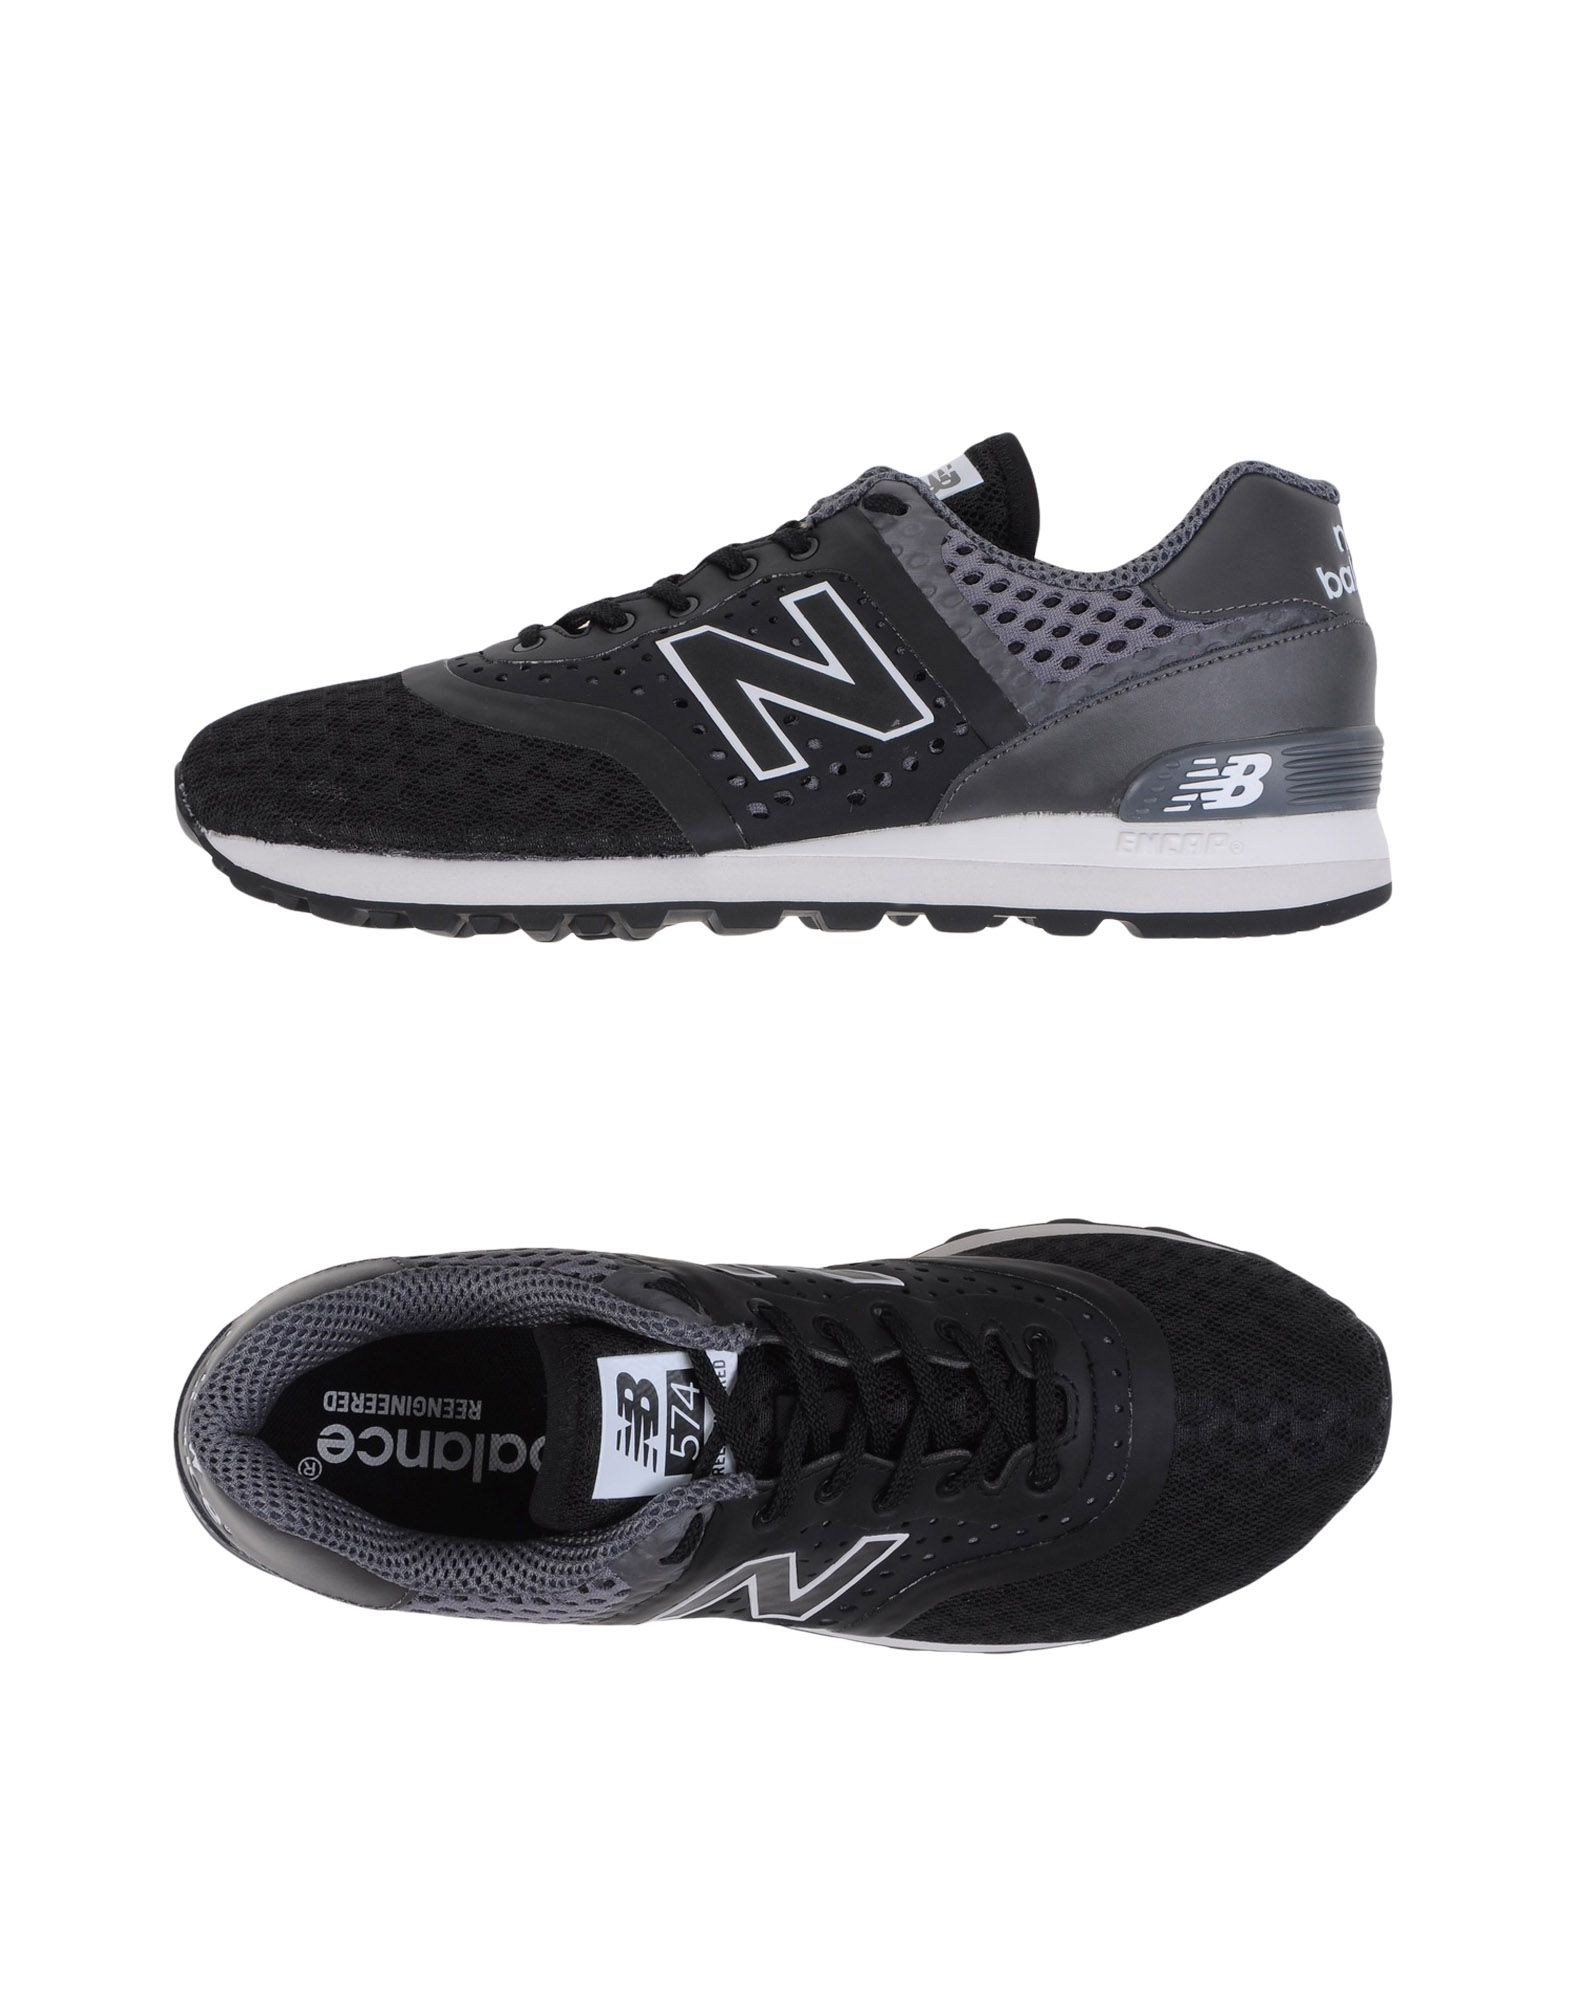 Sneakers New Balance 574 Reenginered - Homme - Sneakers New Balance sur